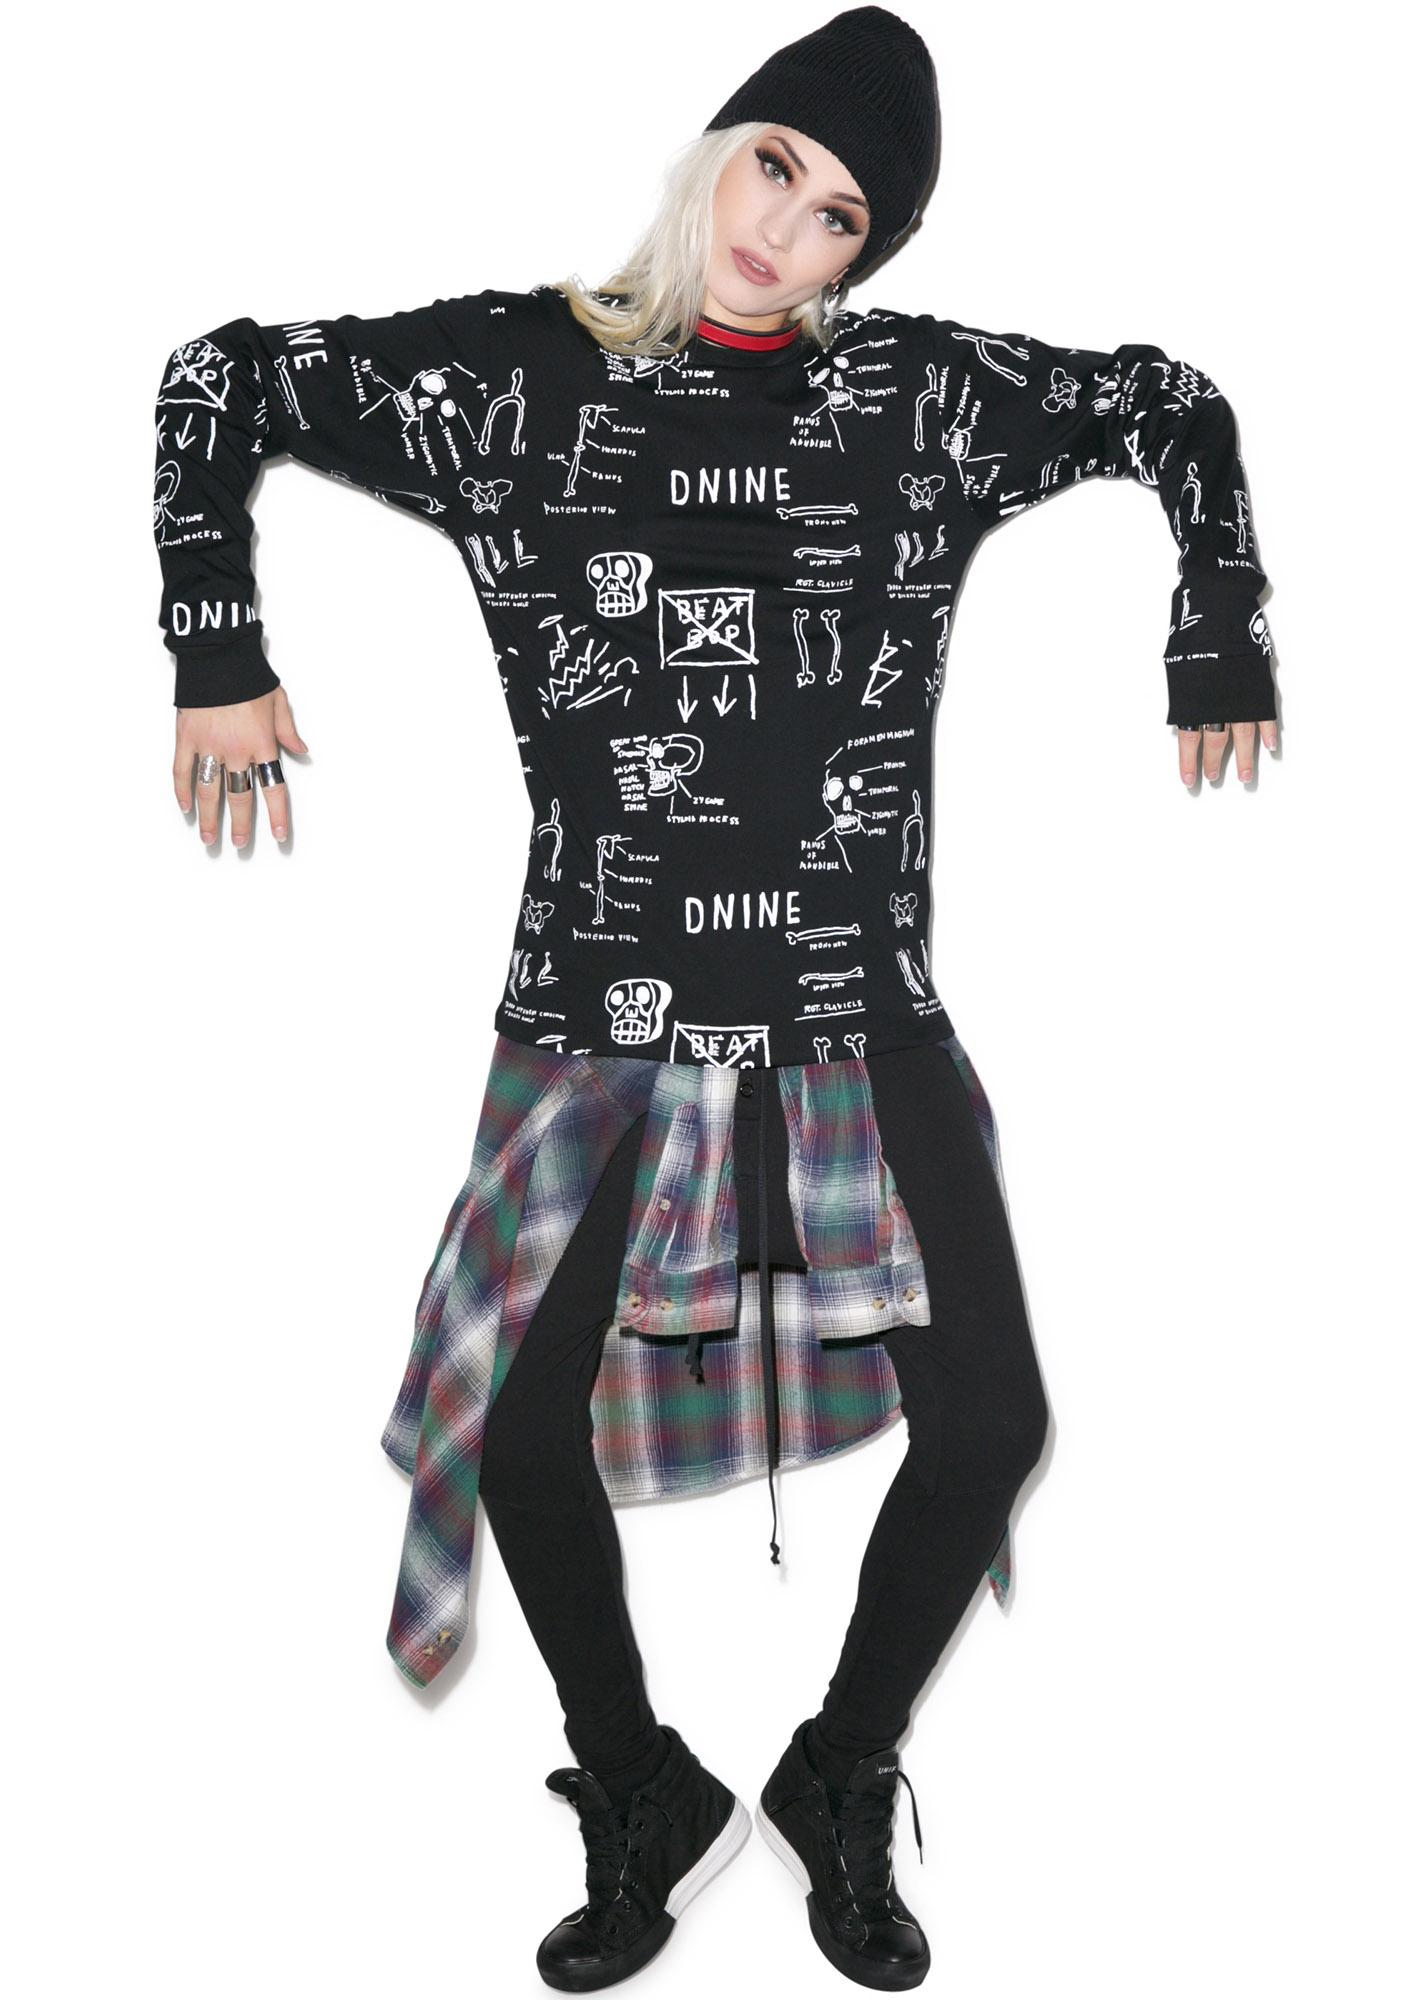 D9 Reserve Basquiat Anatomy Long Sleeve Tee